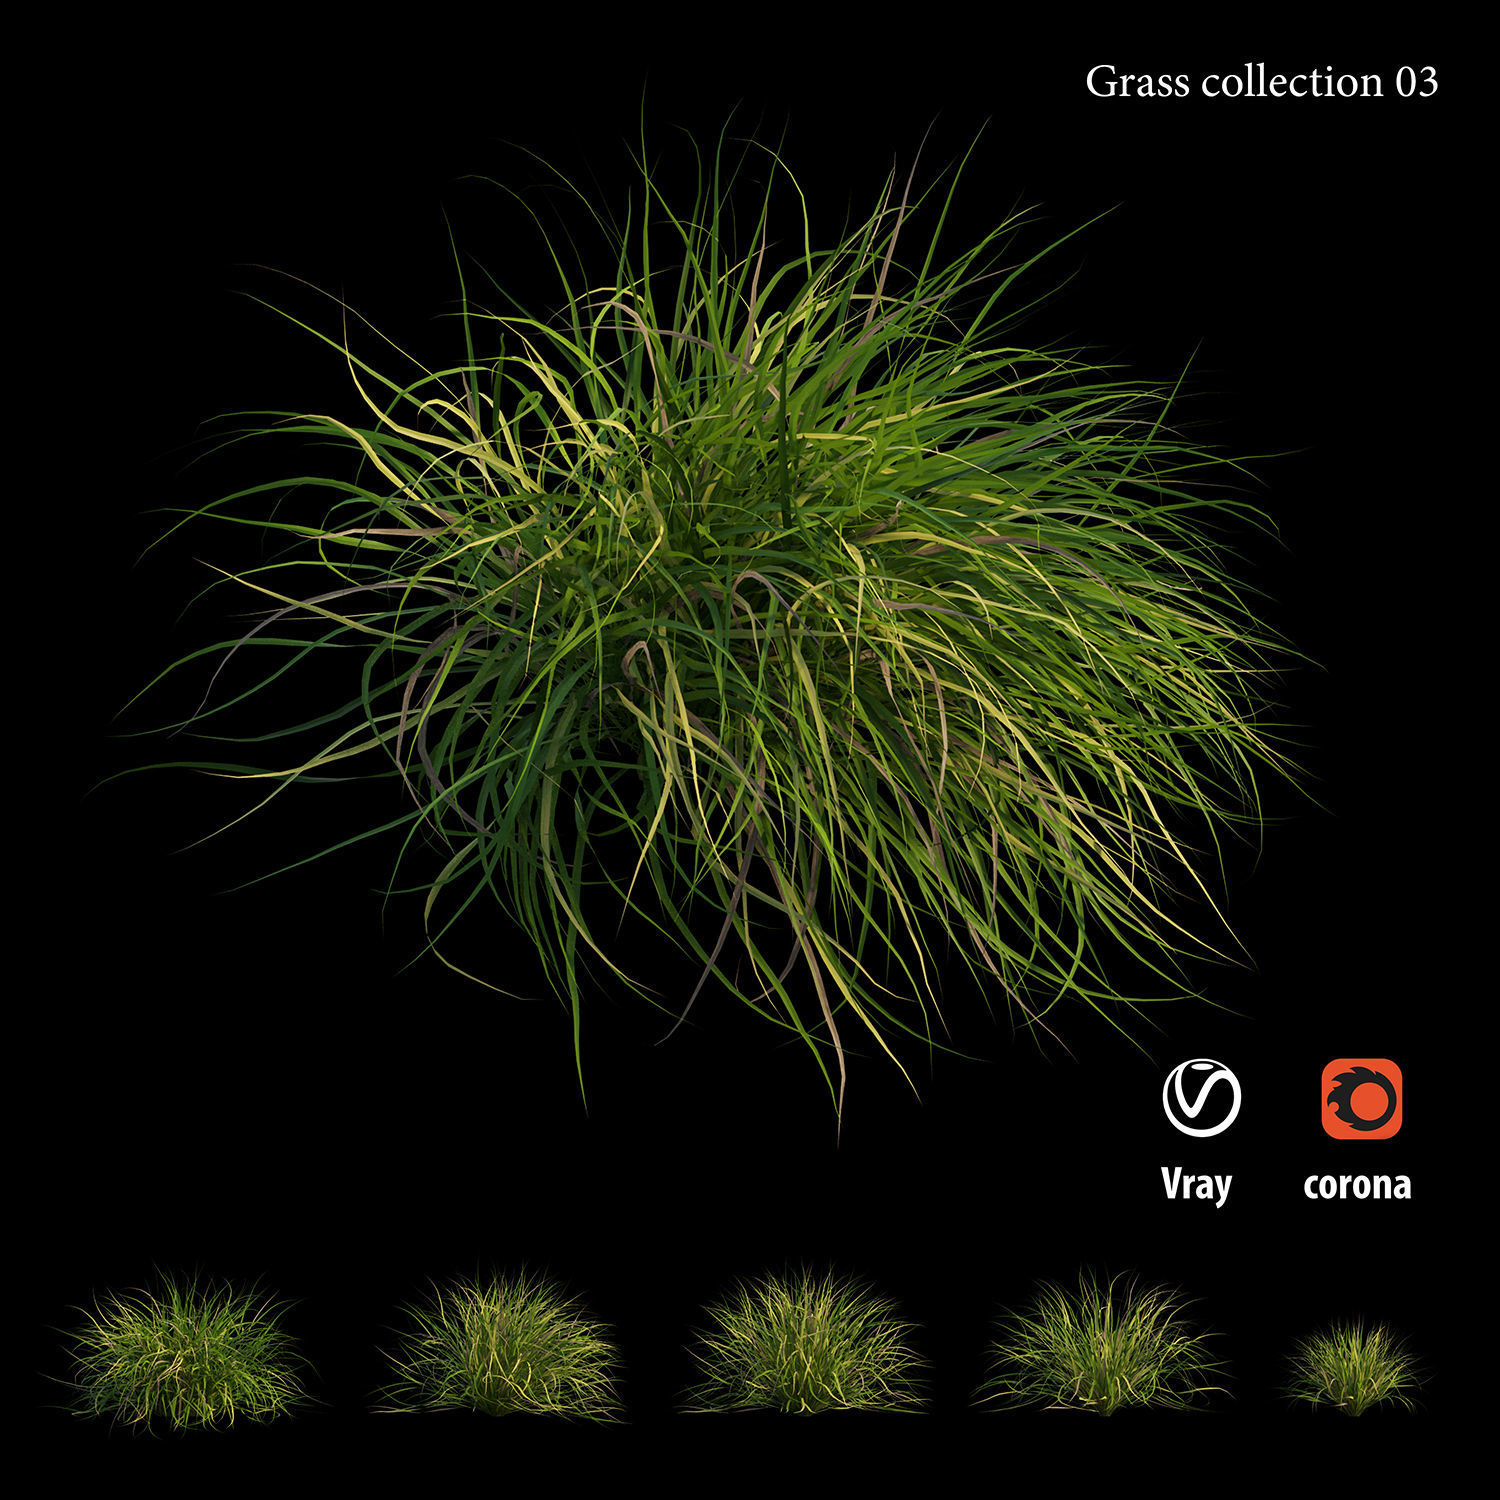 Grass collection 03